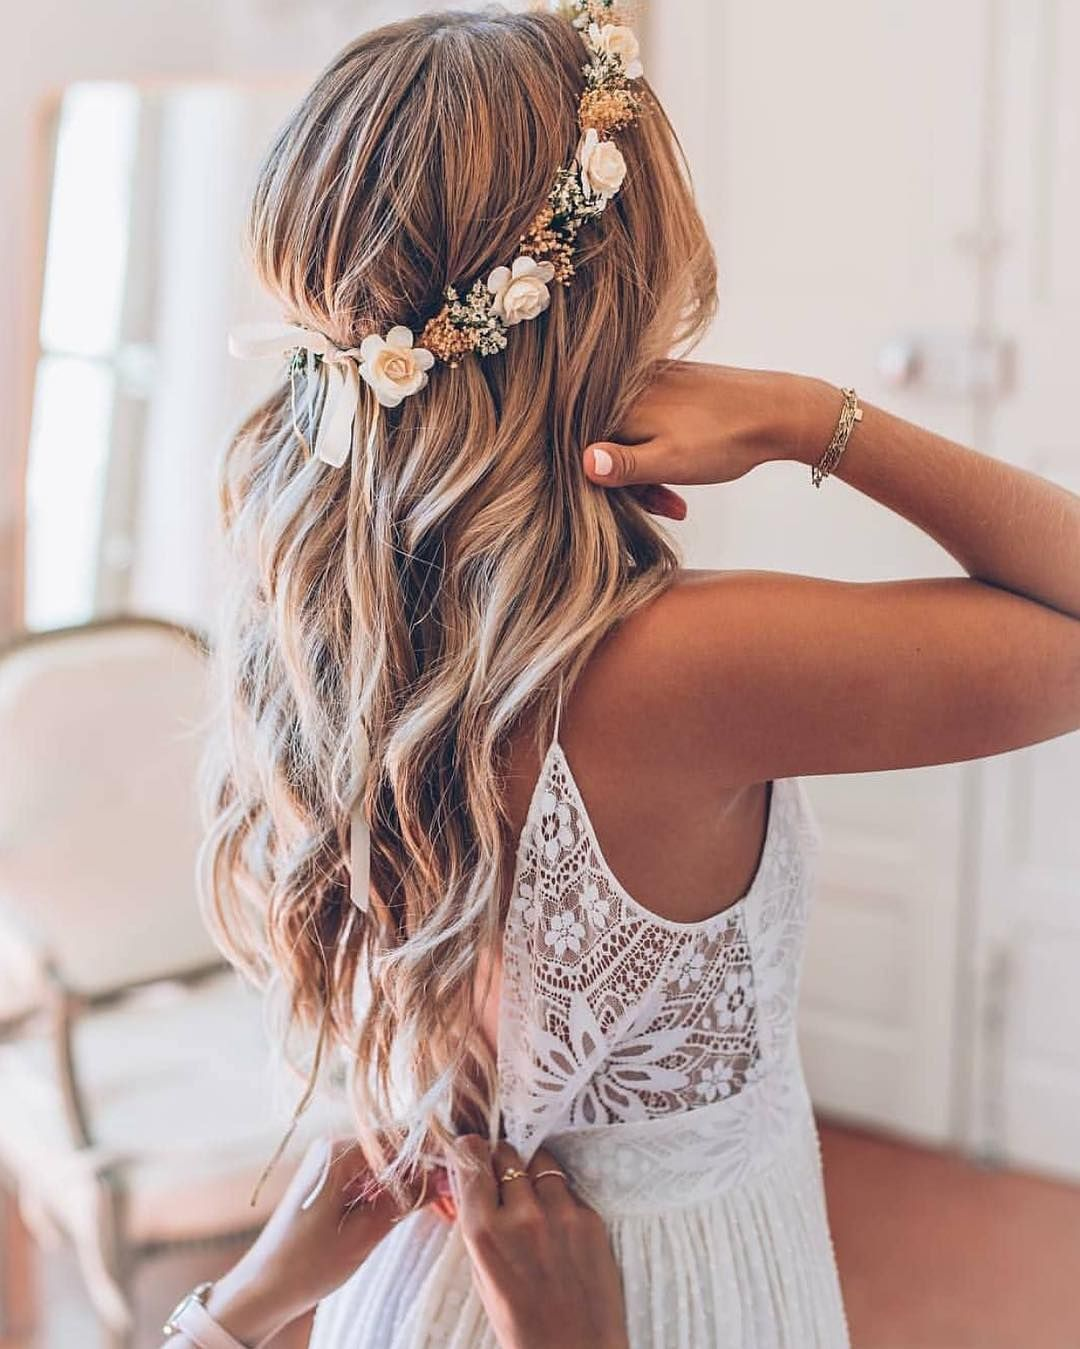 50 Most Beautiful Bridal Hair Style From Real Weddings Hairstyles Hairstyles For Medium Length Hair Flower Crown Hairstyle Hair Styles Beautiful Bridal Hair